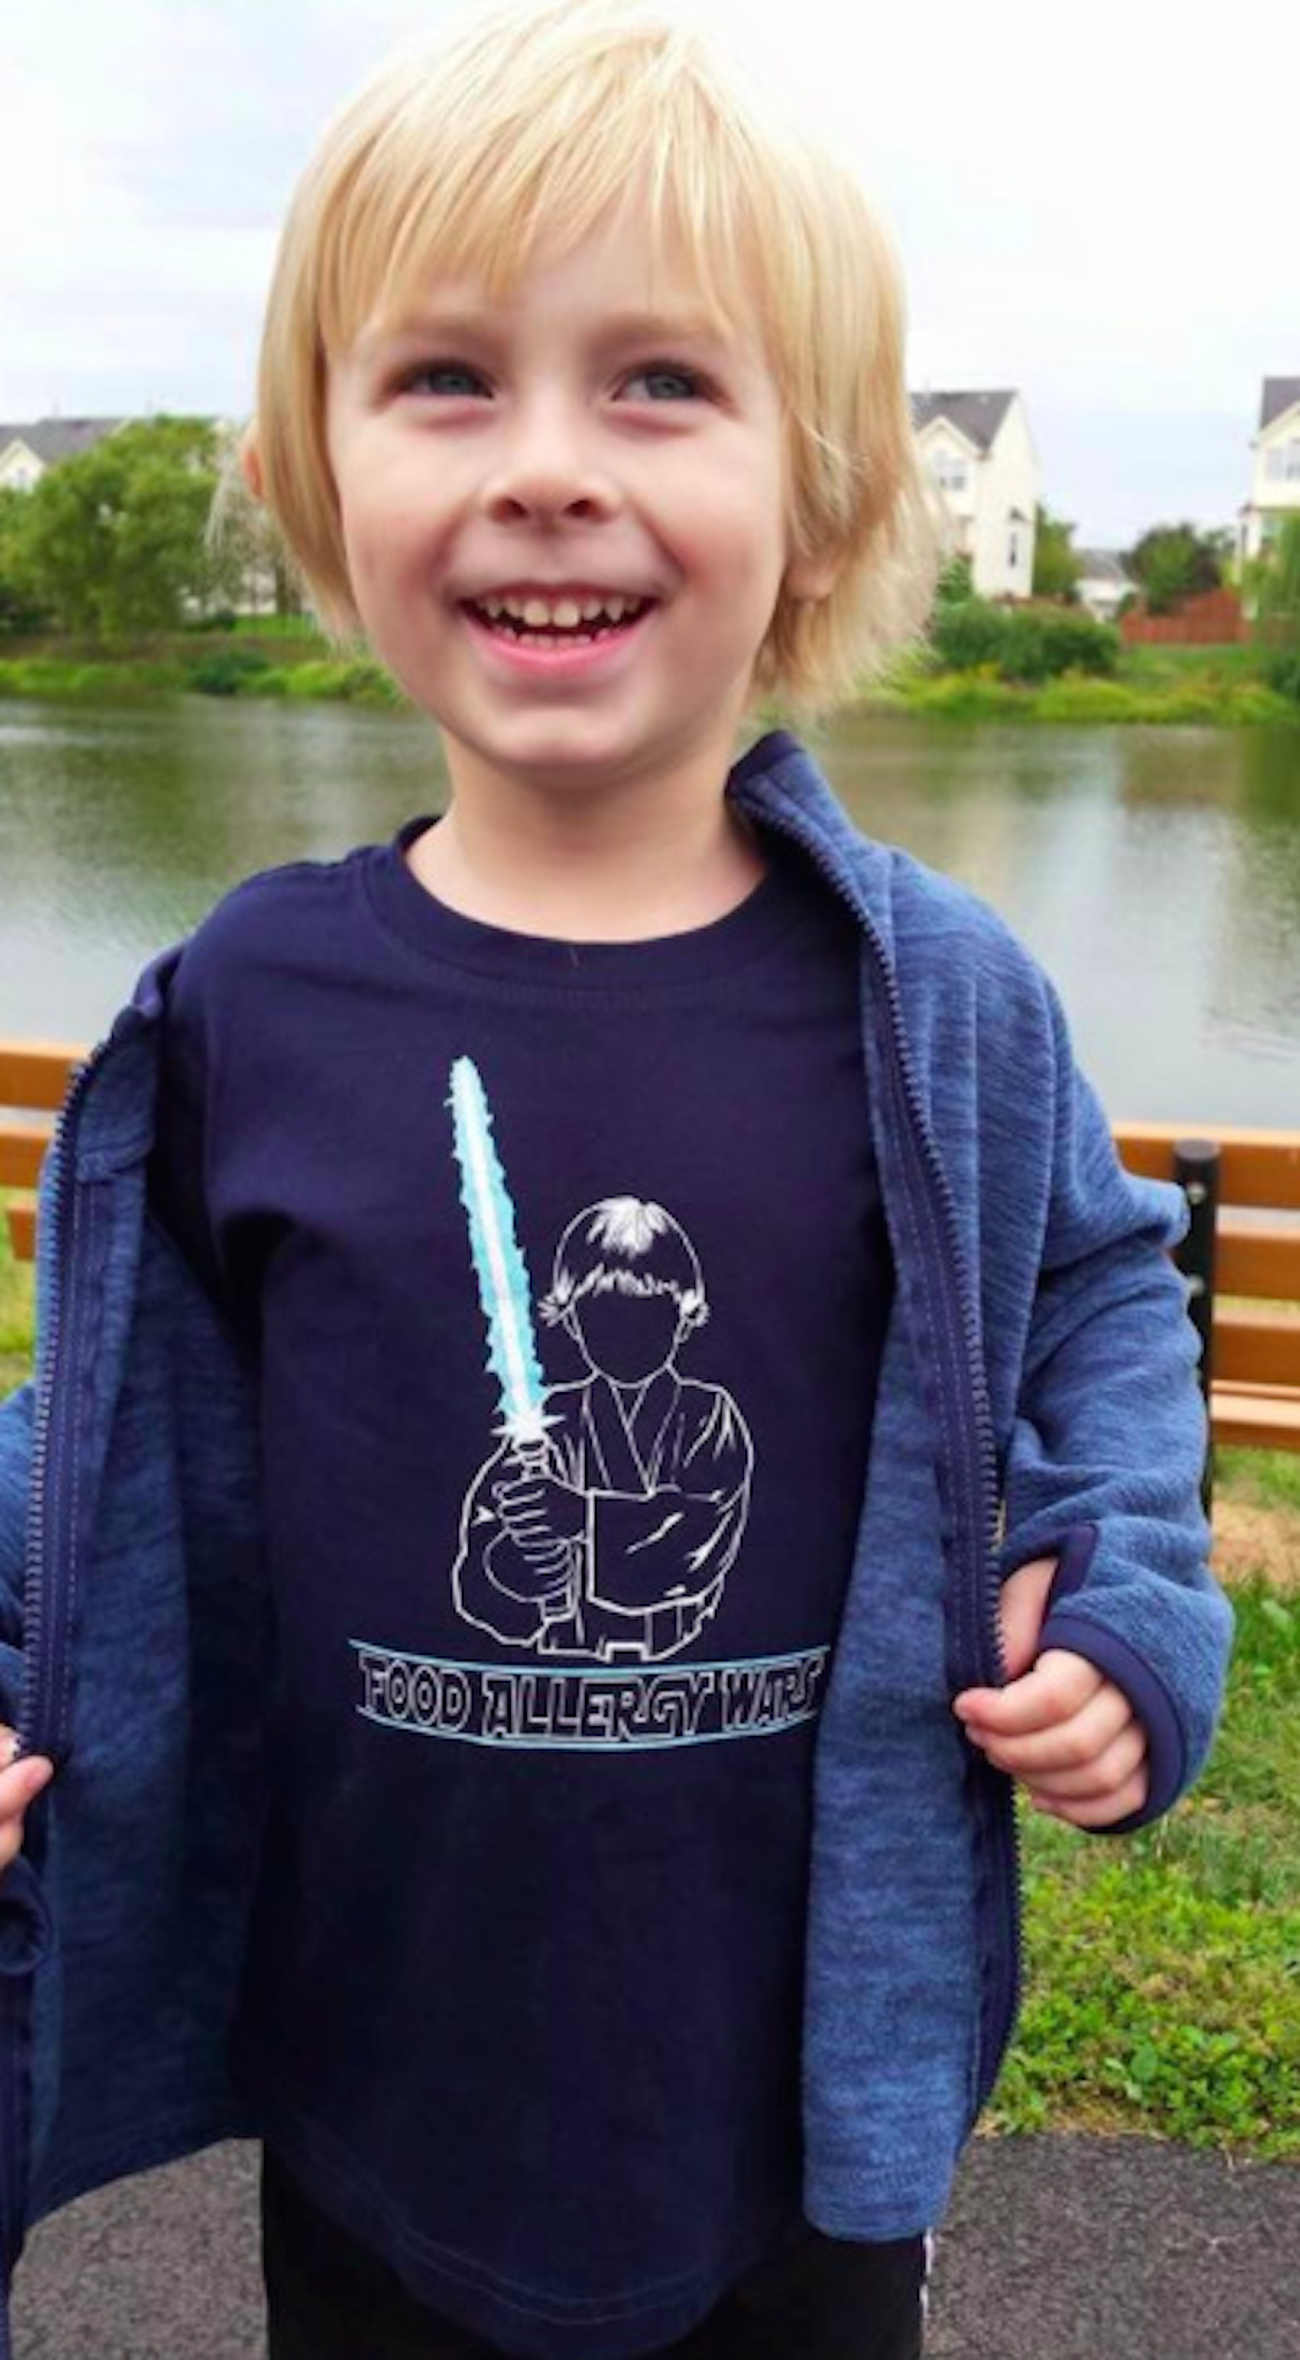 Boy wearing a jacket over a t-shirt that says food allergy wars and has an illustration of a boy holding a lightsaber